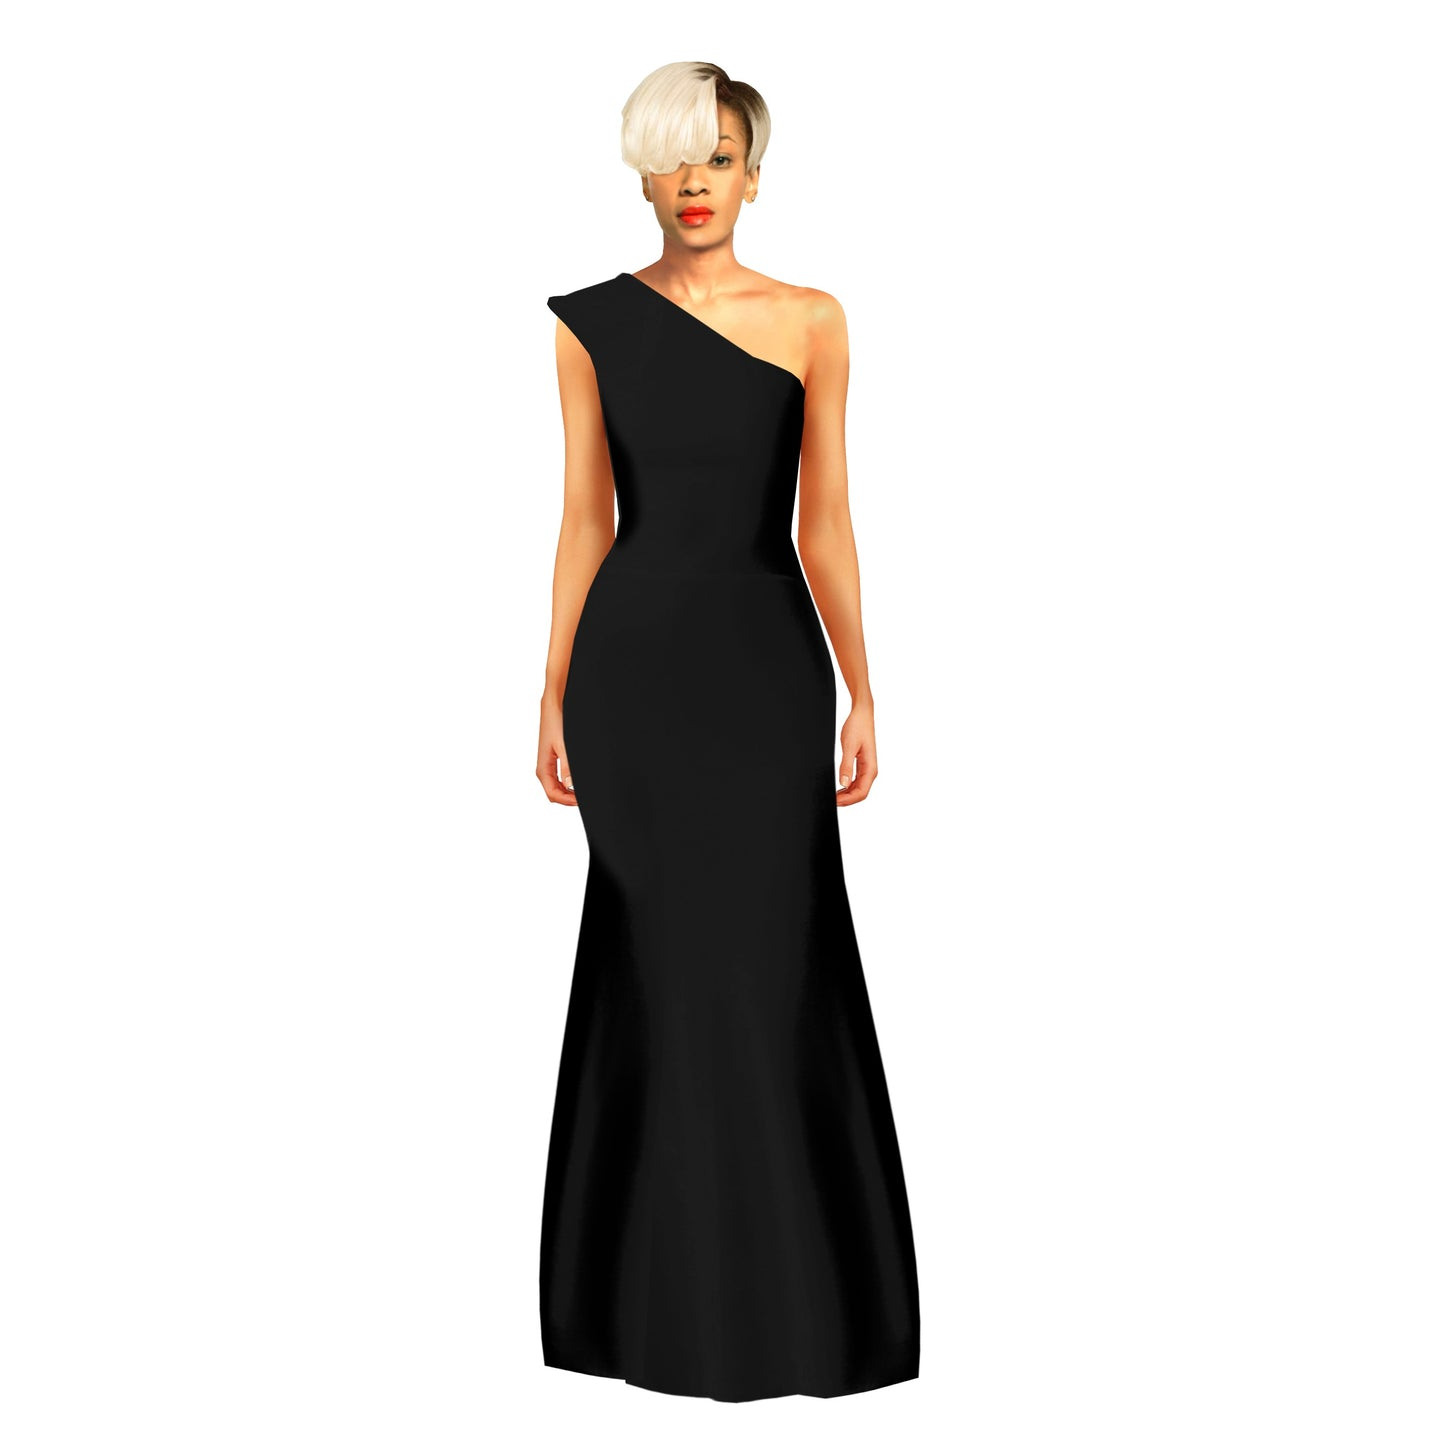 Sanni is a minimal one shoulder, glam dress by House of Perris